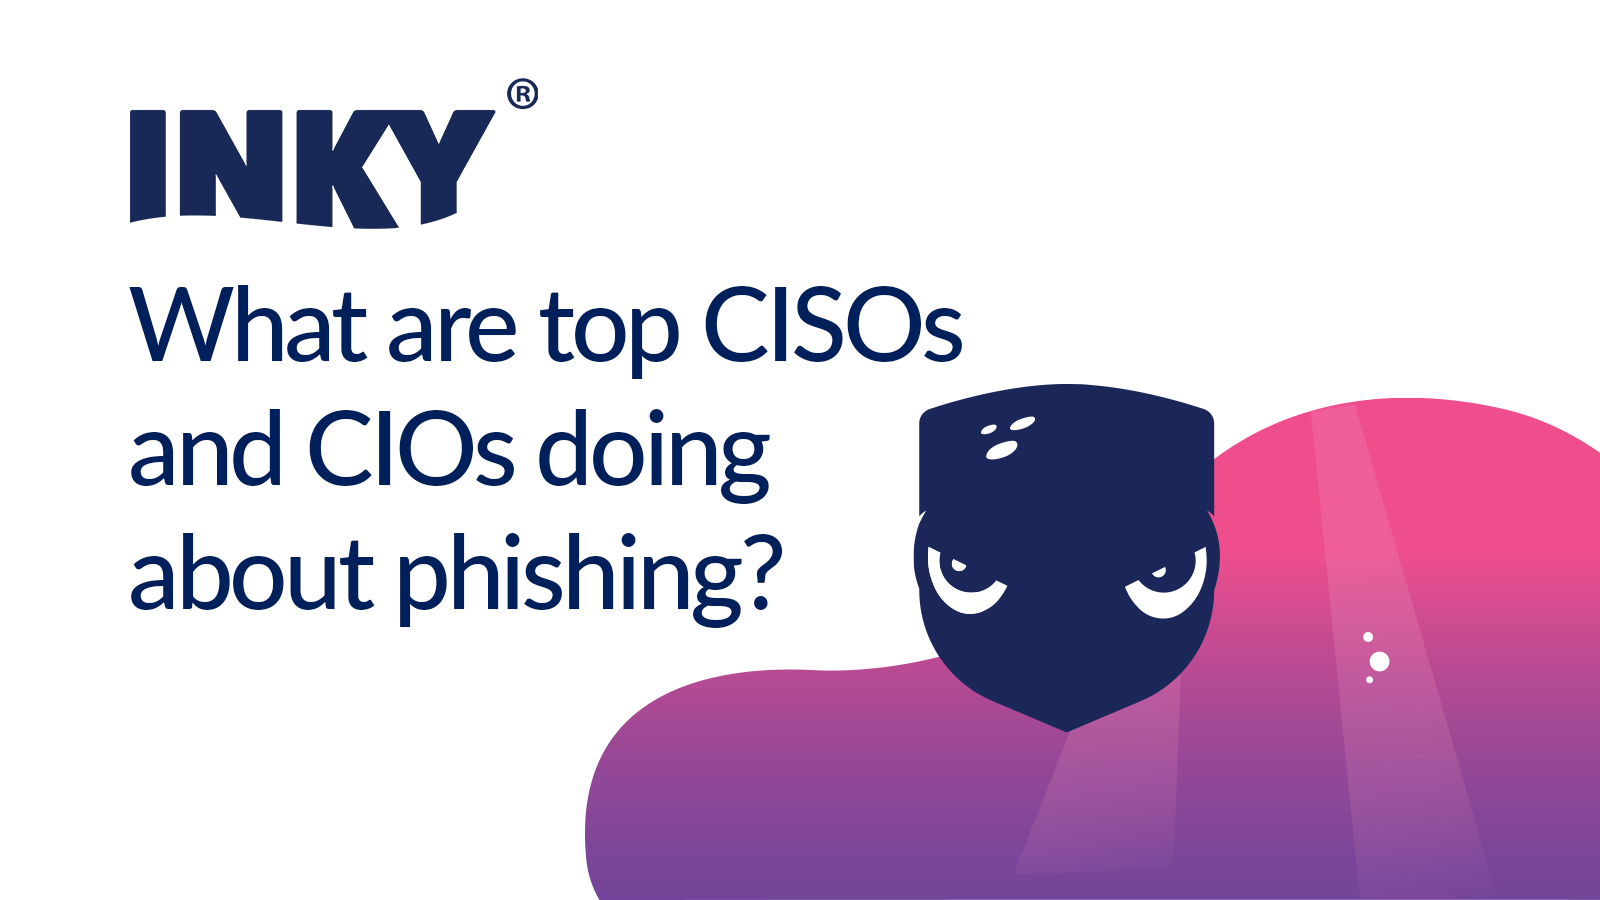 What Is Phishing and What Are Top CISOs Doing About It?